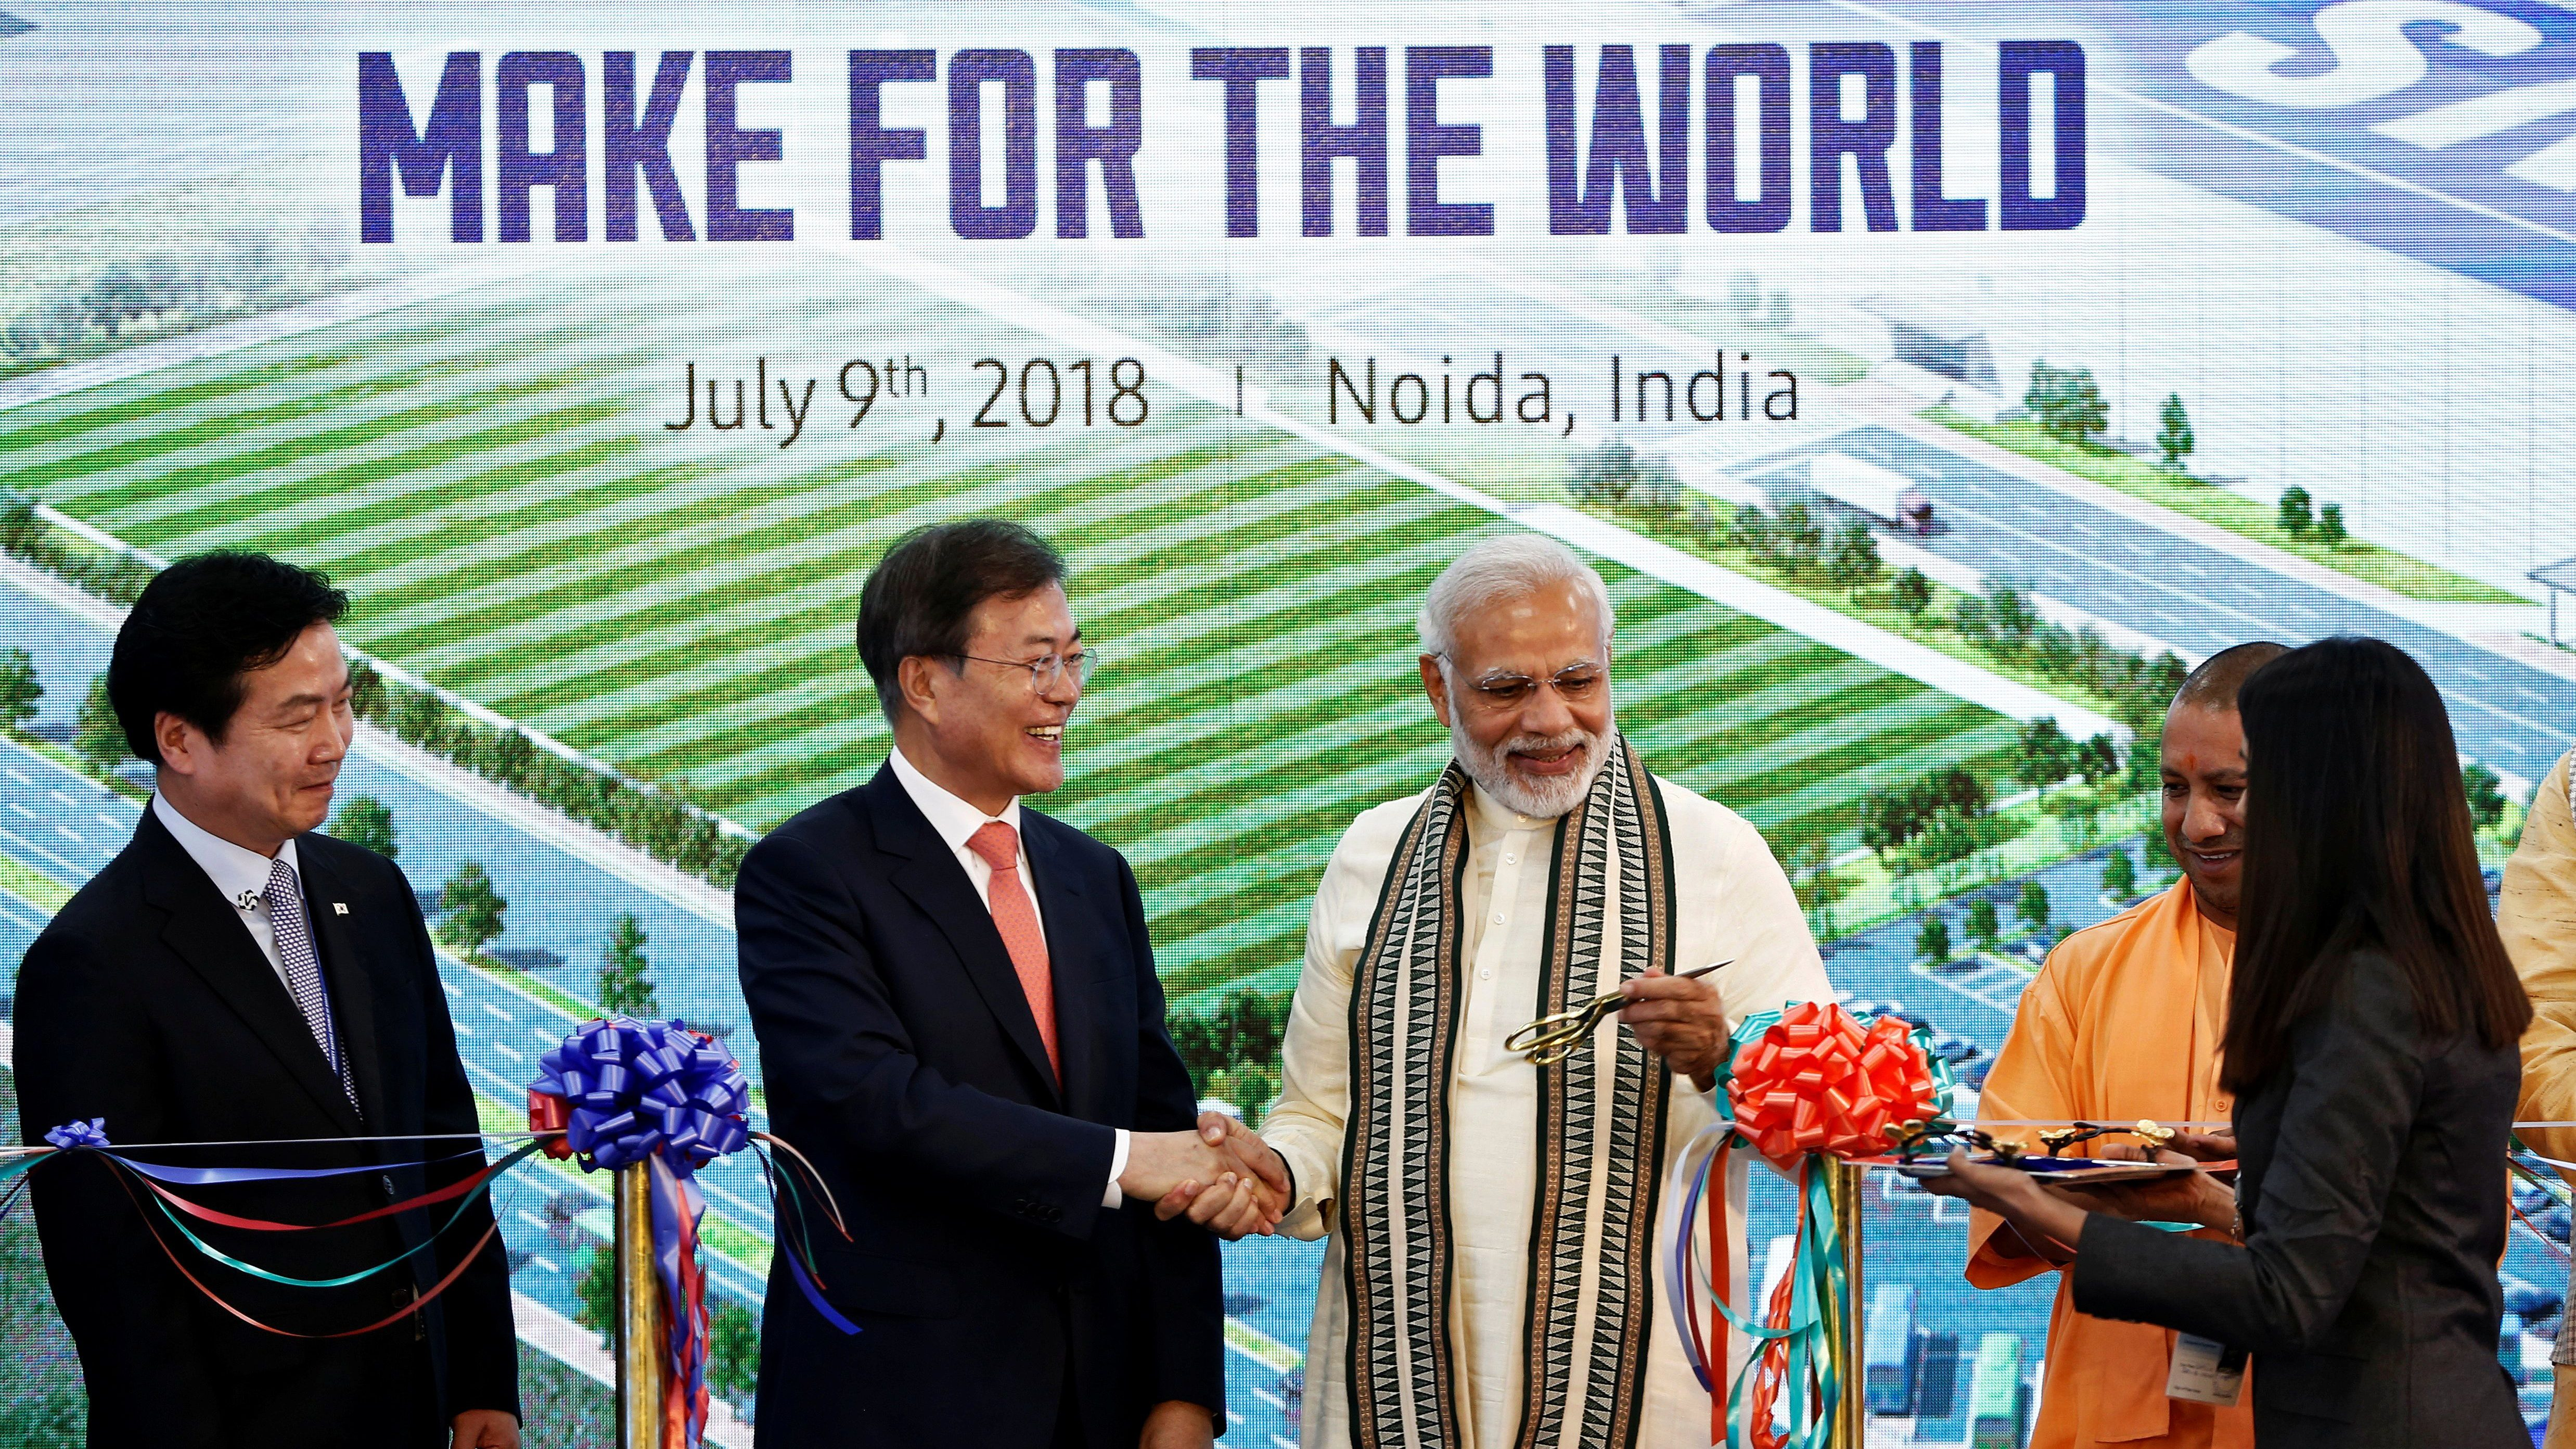 South Korean President Moon Jae-in and Indian Prime Minister Narendra Modi shake hands after inaugurating the Samsung Electronics smartphone manufacturing facility in Noida, India, July 9, 2018. REUTERS/Adnan Abidi - RC1849C57D60